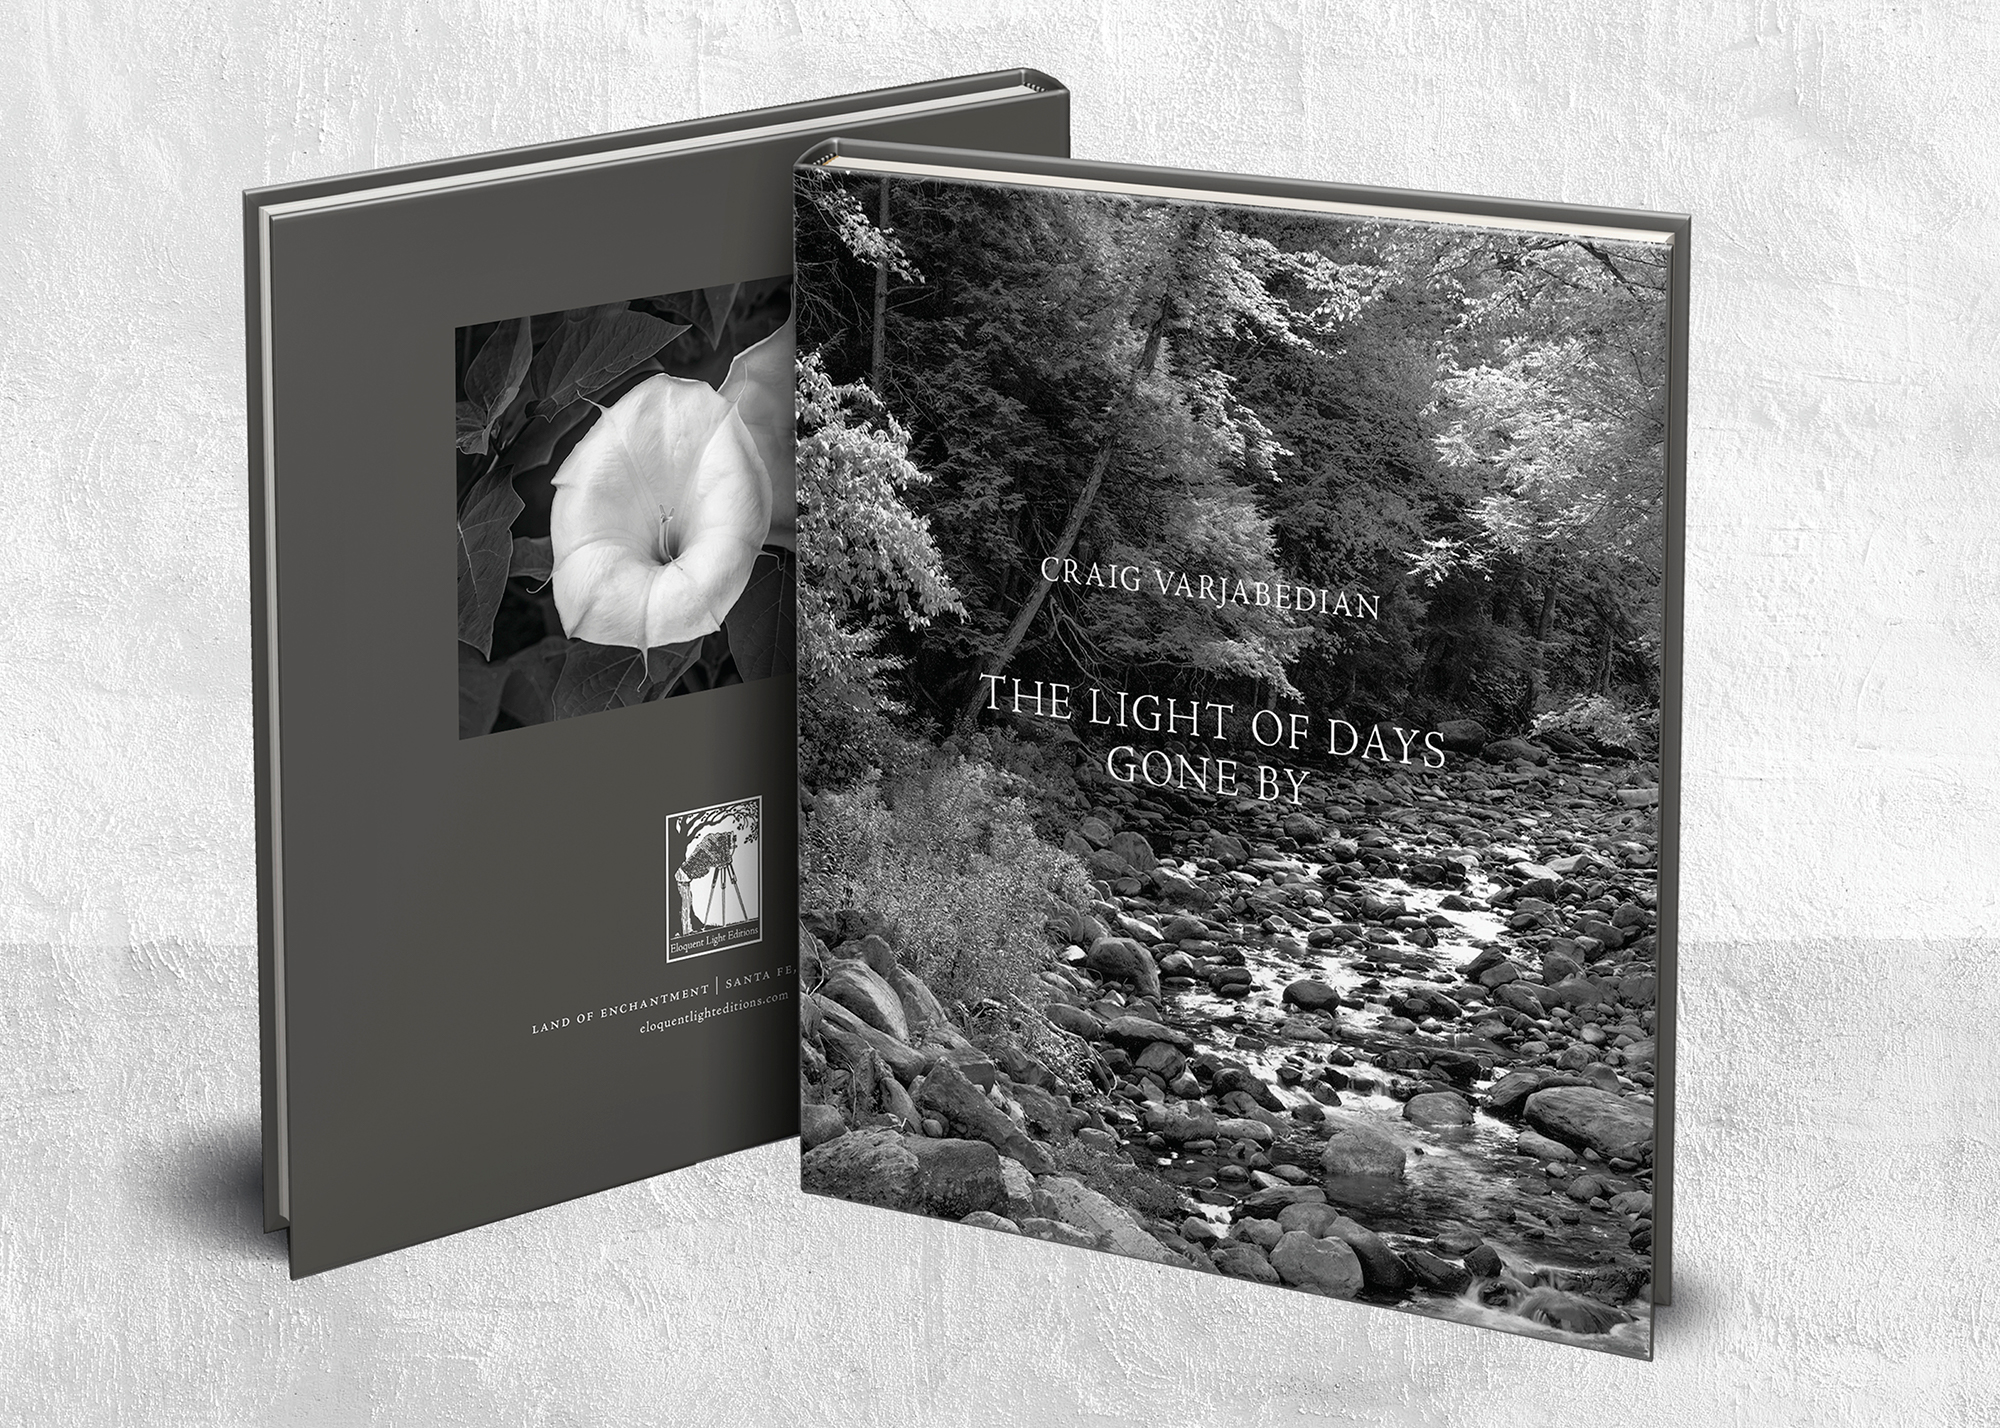 New Photo Book - The Light of Days Gone By: Photographs by Craig Varjabedian